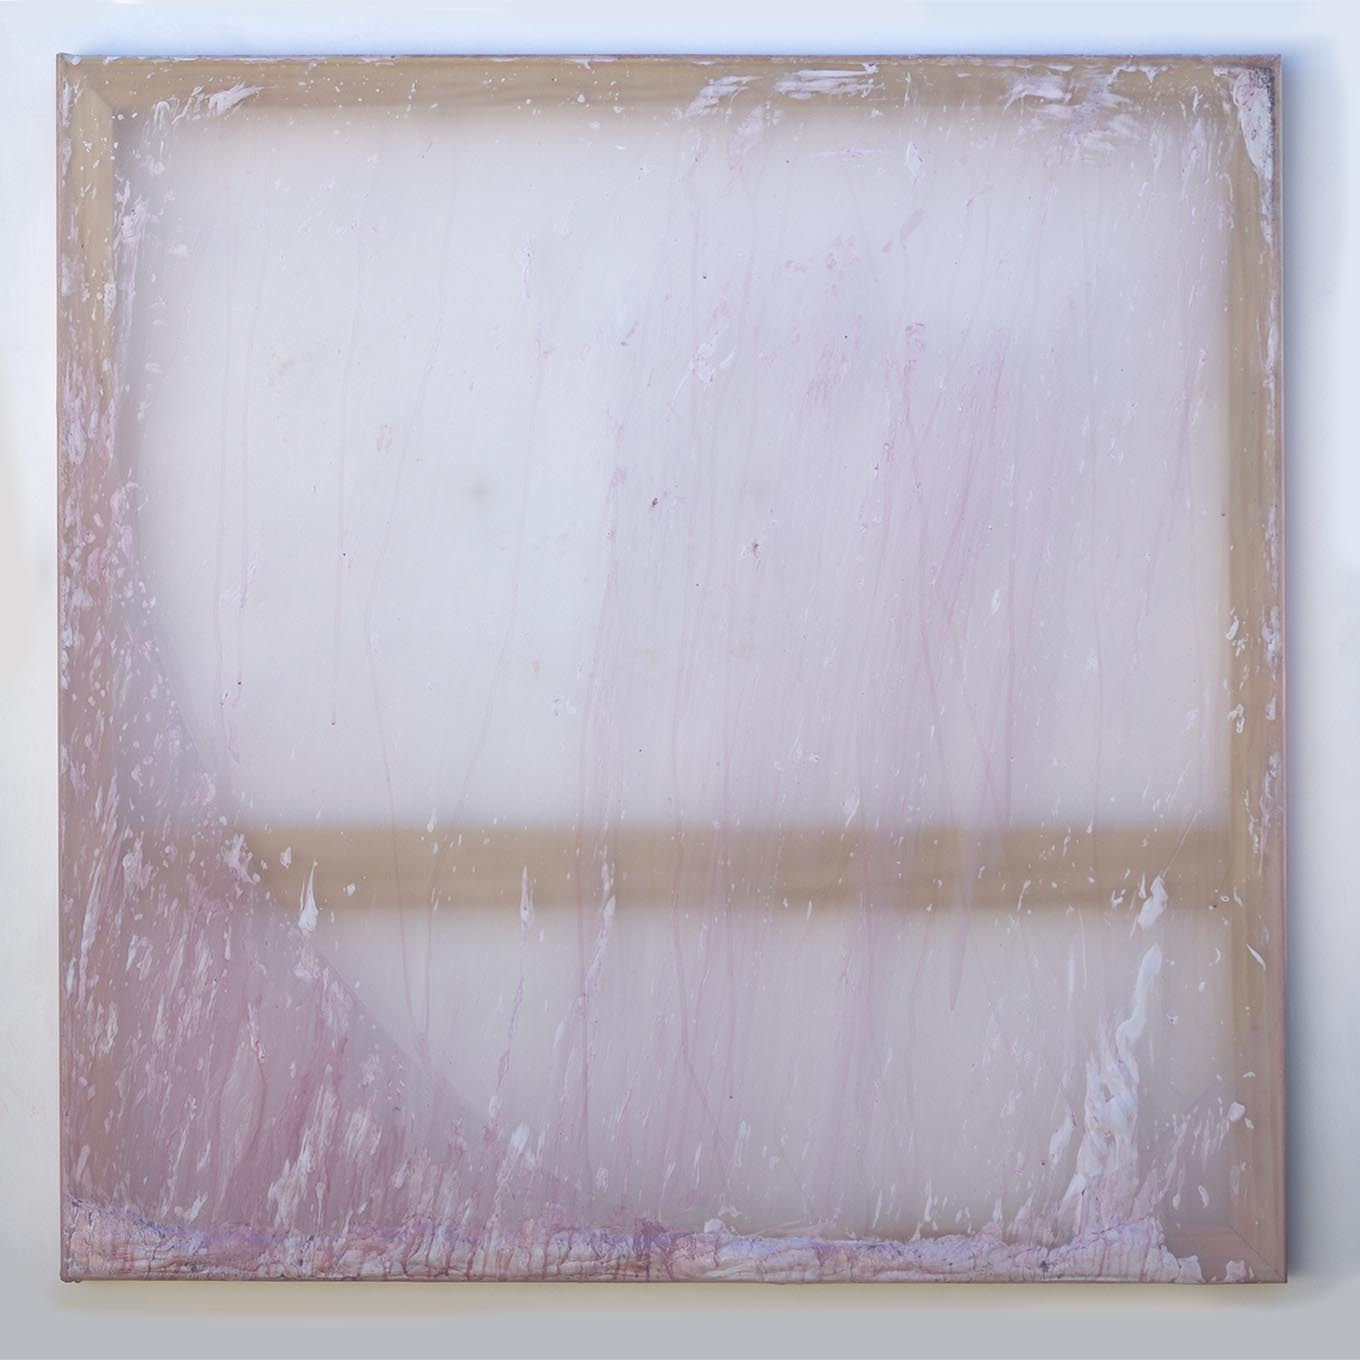 Rebecca Wallis, All I want, 2018, acrylic and acrylic mediums behind silk over pine stretcher bars, 100x100x3.5cm